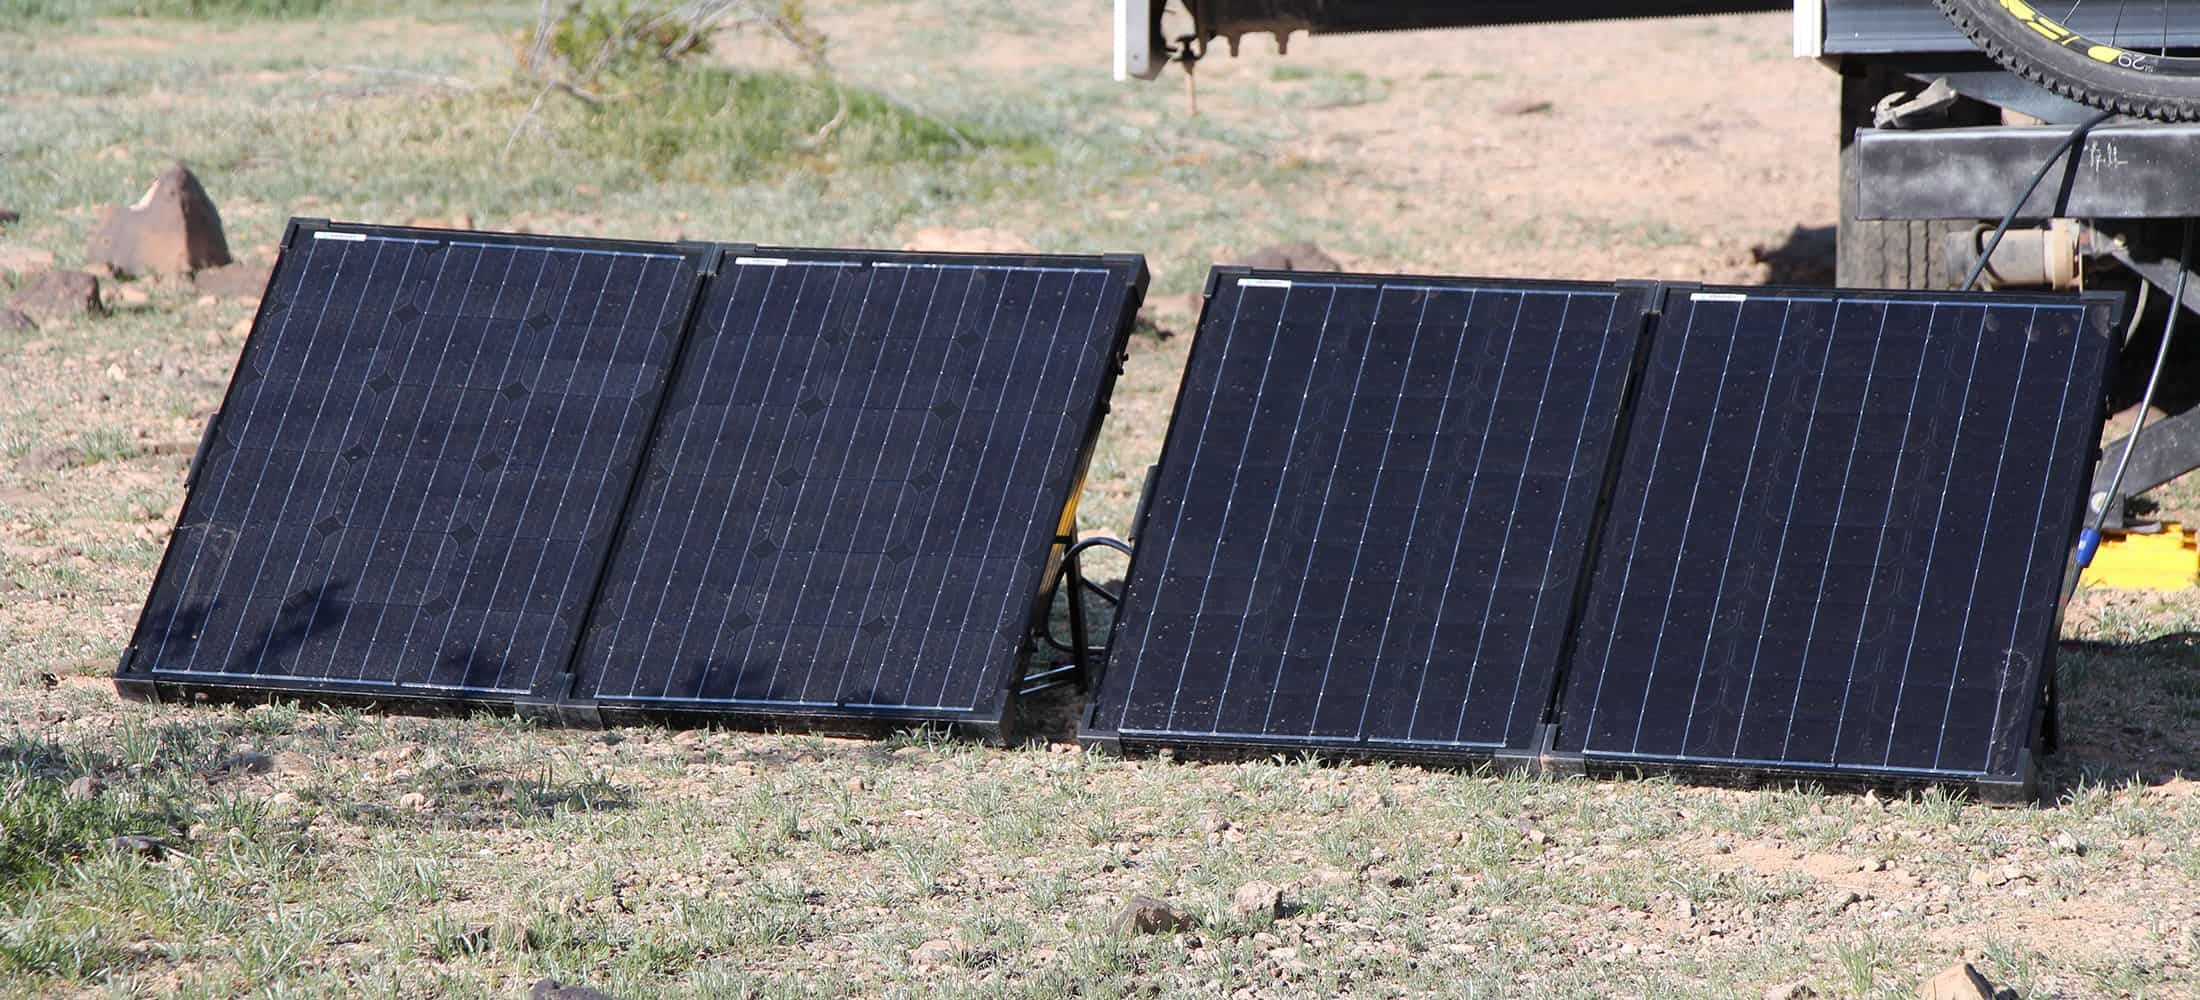 portable-solar-panel-to-charge-12v-batteries-and-power-station-solar-generator-the-solar-addict